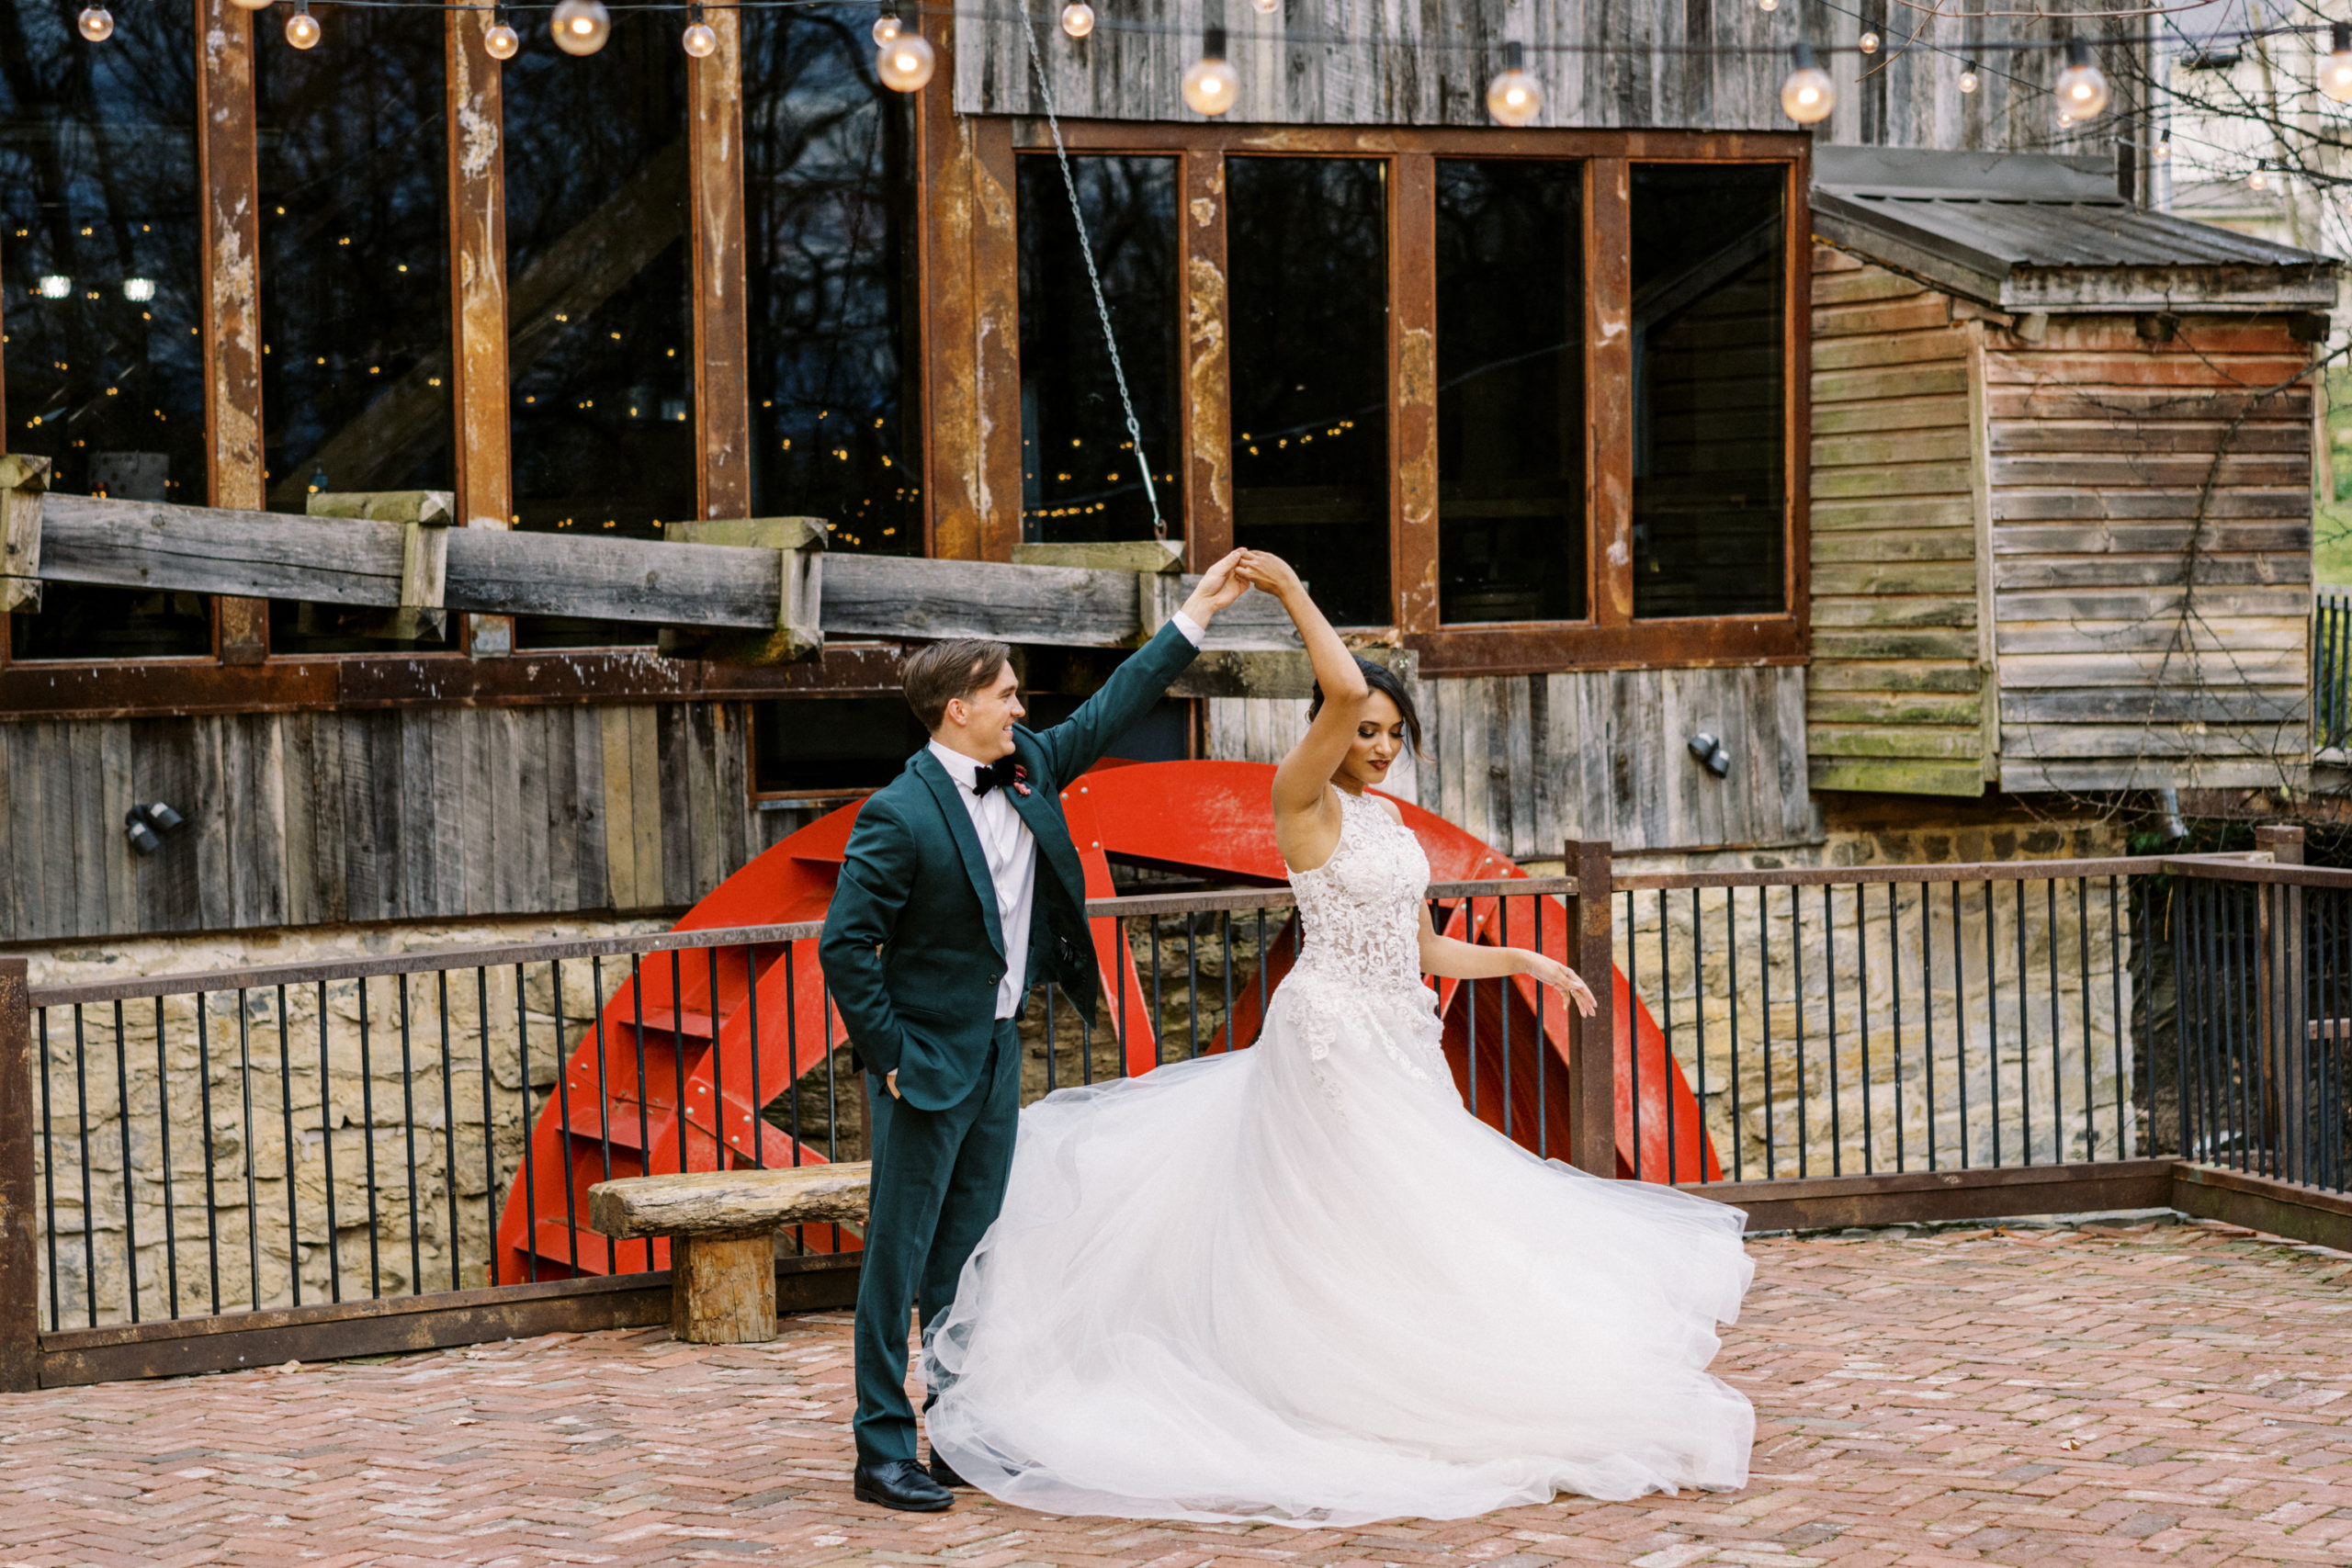 Groom spins his bride while dancing outside in front of a red waterwheel